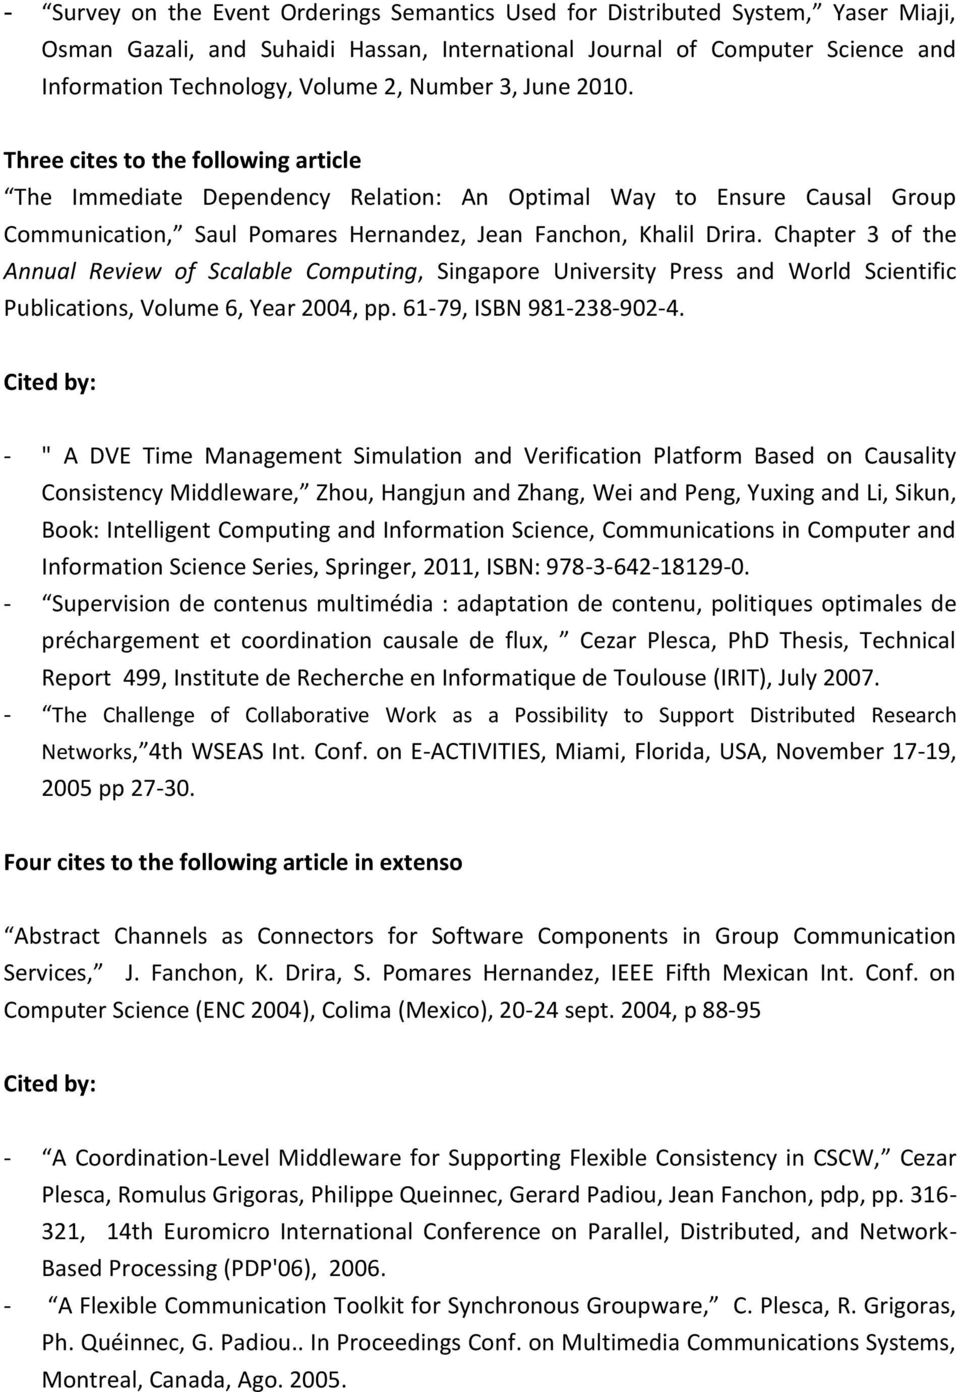 Chapter 3 f the Annual Review f Scalable Cmputing, Singapre University Press and Wrld Scientific Publicatins, Vlume 6, Year 2004, pp. 61-79, ISBN 981-238-902-4.